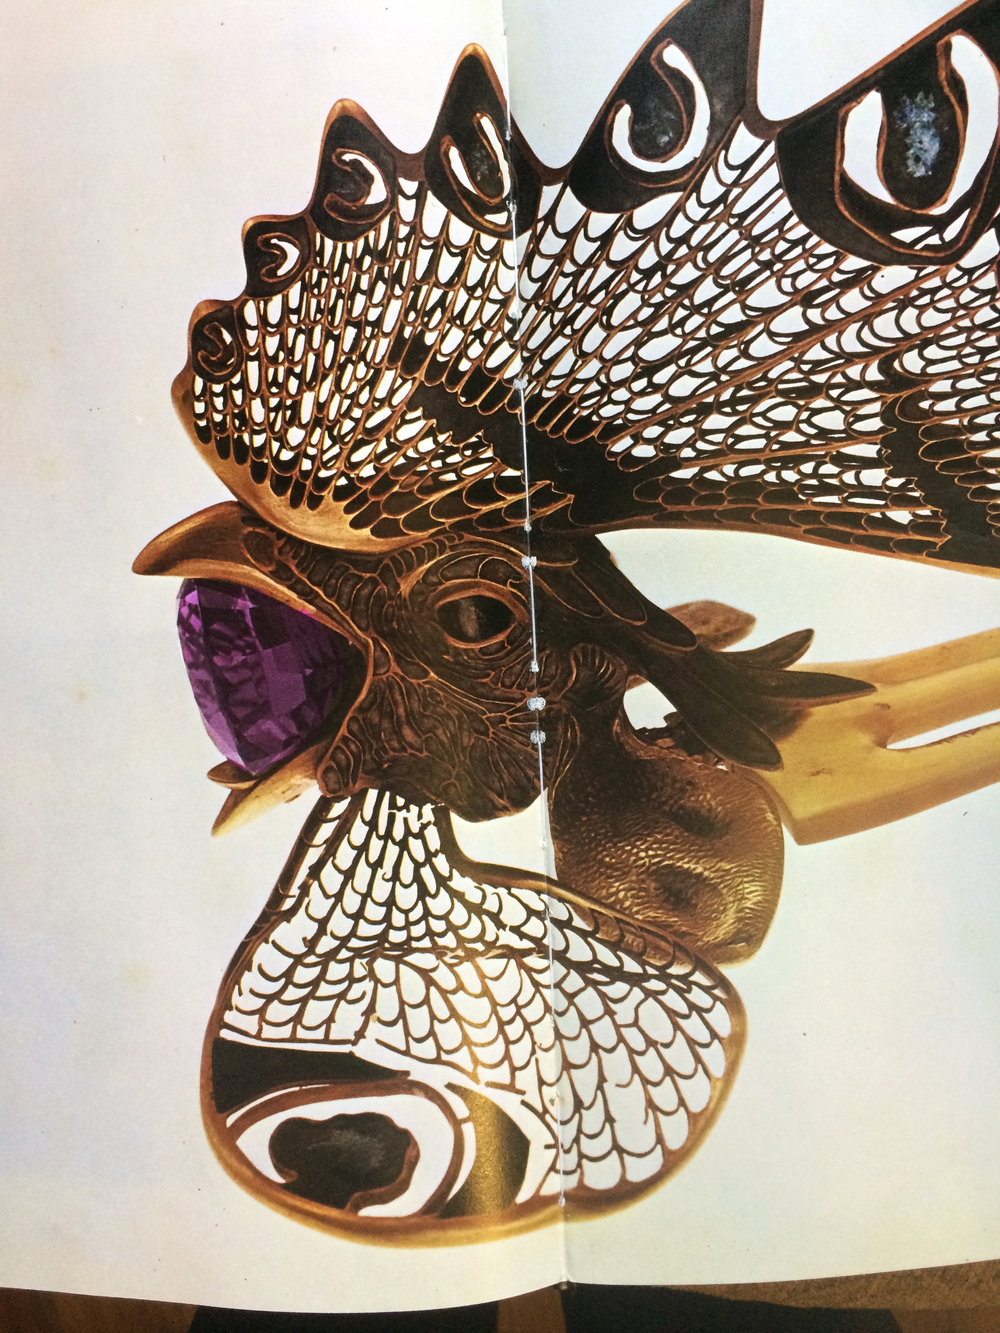 Exquisite translation of nature with breathtaking materials and technique in this Cock's Comb by René Lalique from a picture book of mine owned since high school in Santa Barbara California